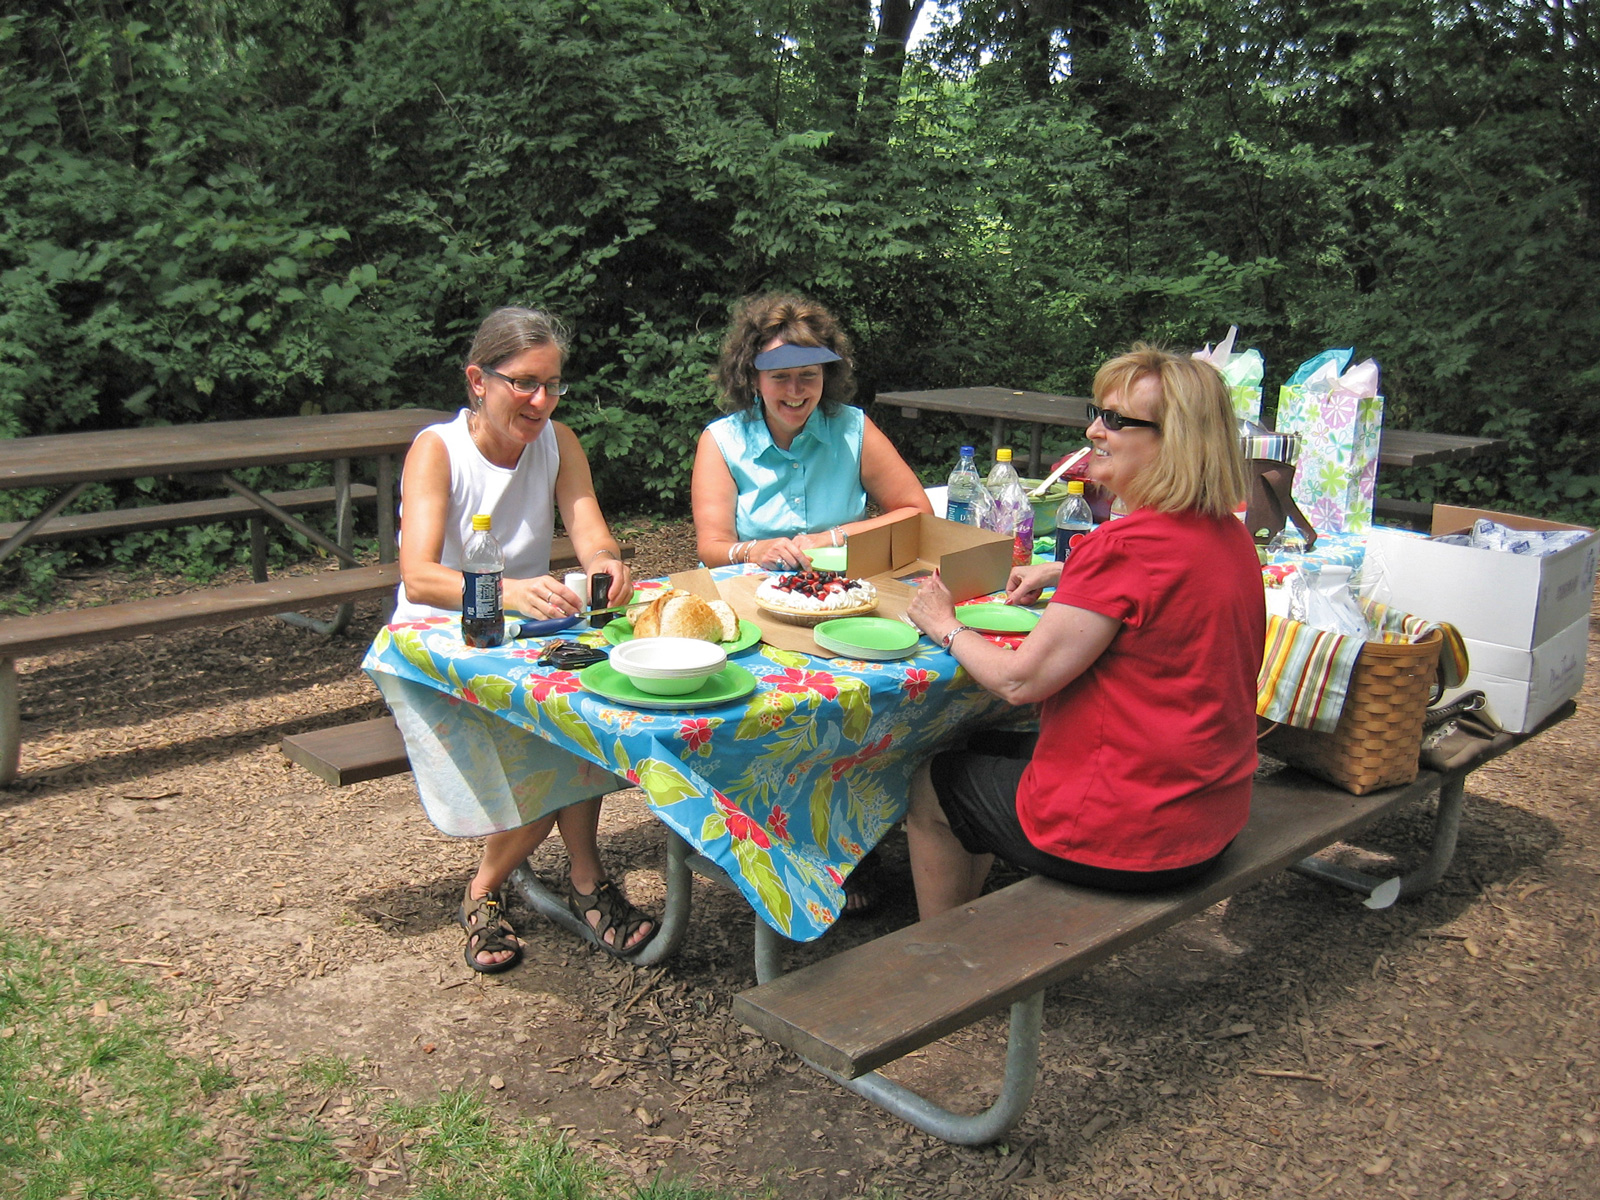 Picnicking at Slate Run's Buzzard's Roost Picnic Area